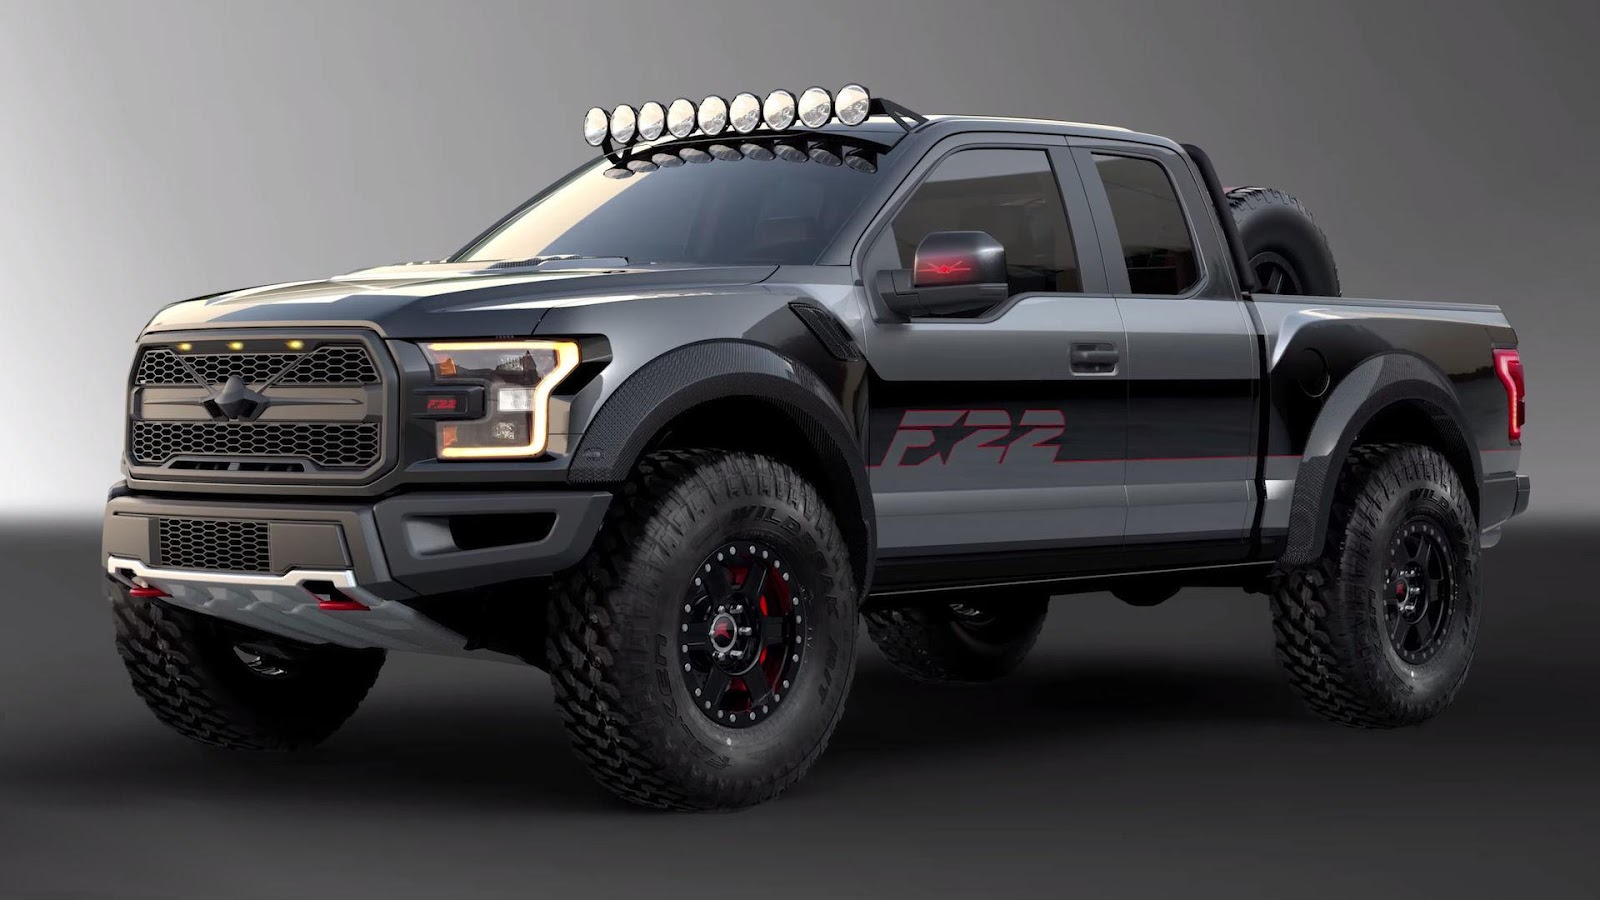 Custom 2018 F 150 >> Fighter Jet-Inspired Ford F-150 Raptor Boasts 545 HP, Wilder Looks | Carscoops